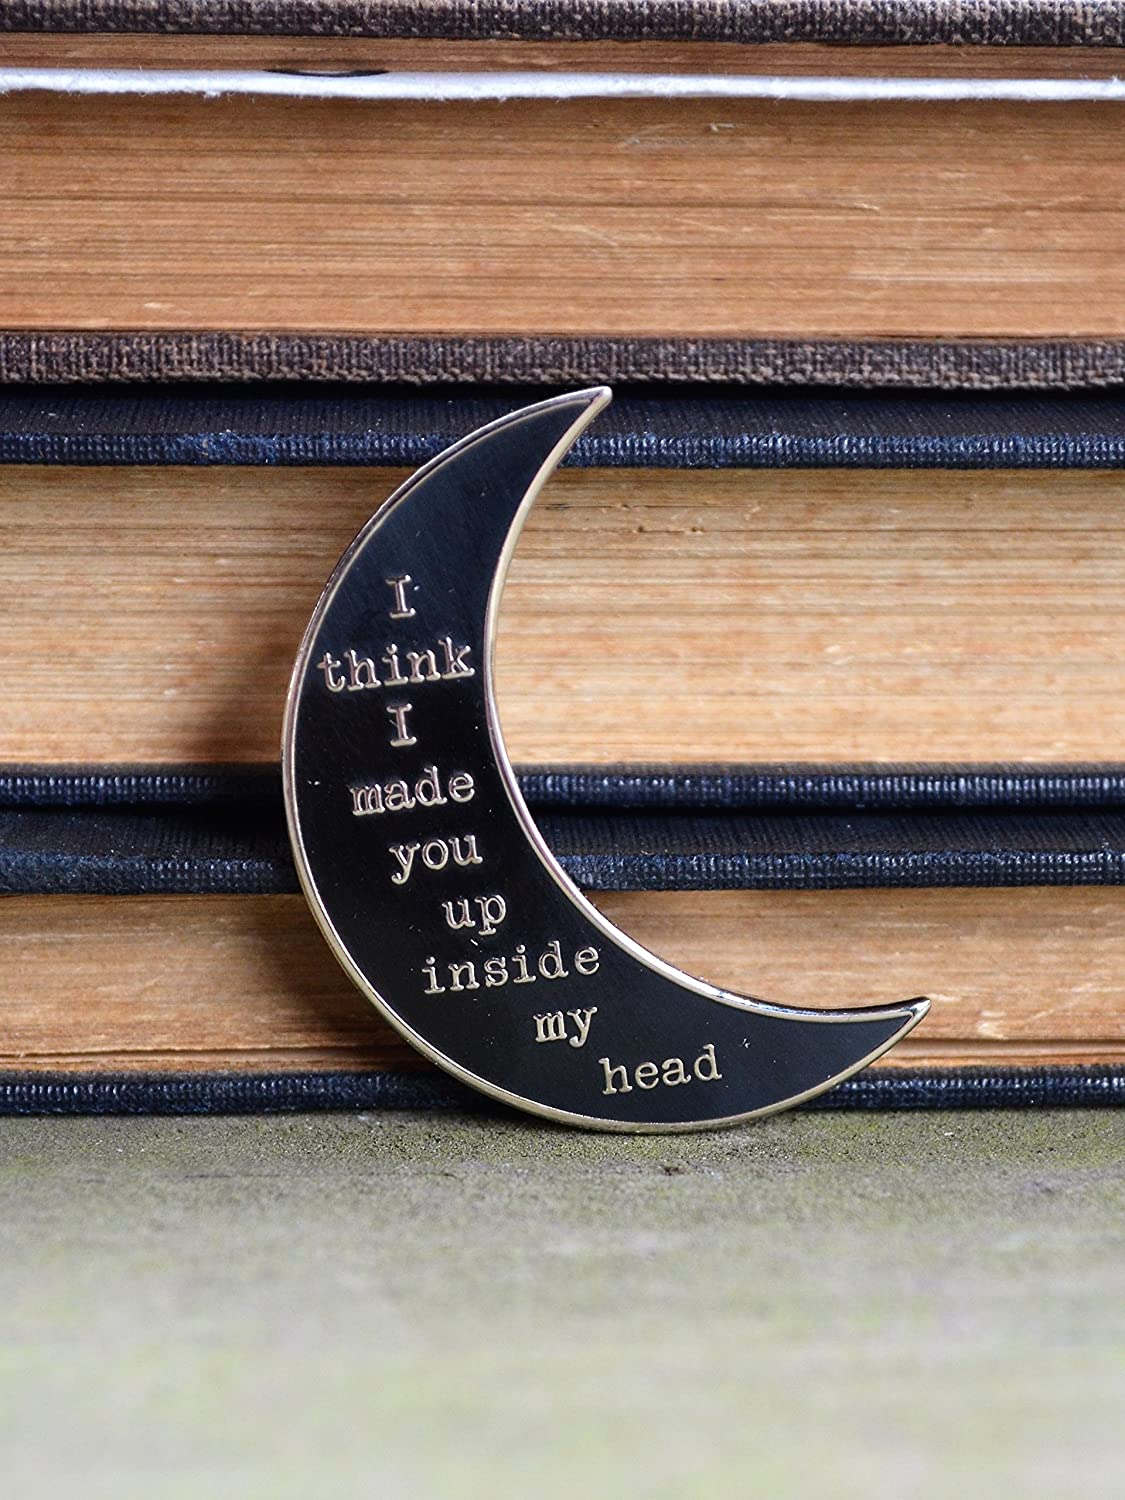 Sylvia Plath Pin Hard Enamel Pin Gifts for Writers Gifts for Readers Poetry Gift Mad Girl's Love Song Moon Pin Literary Pin Literary